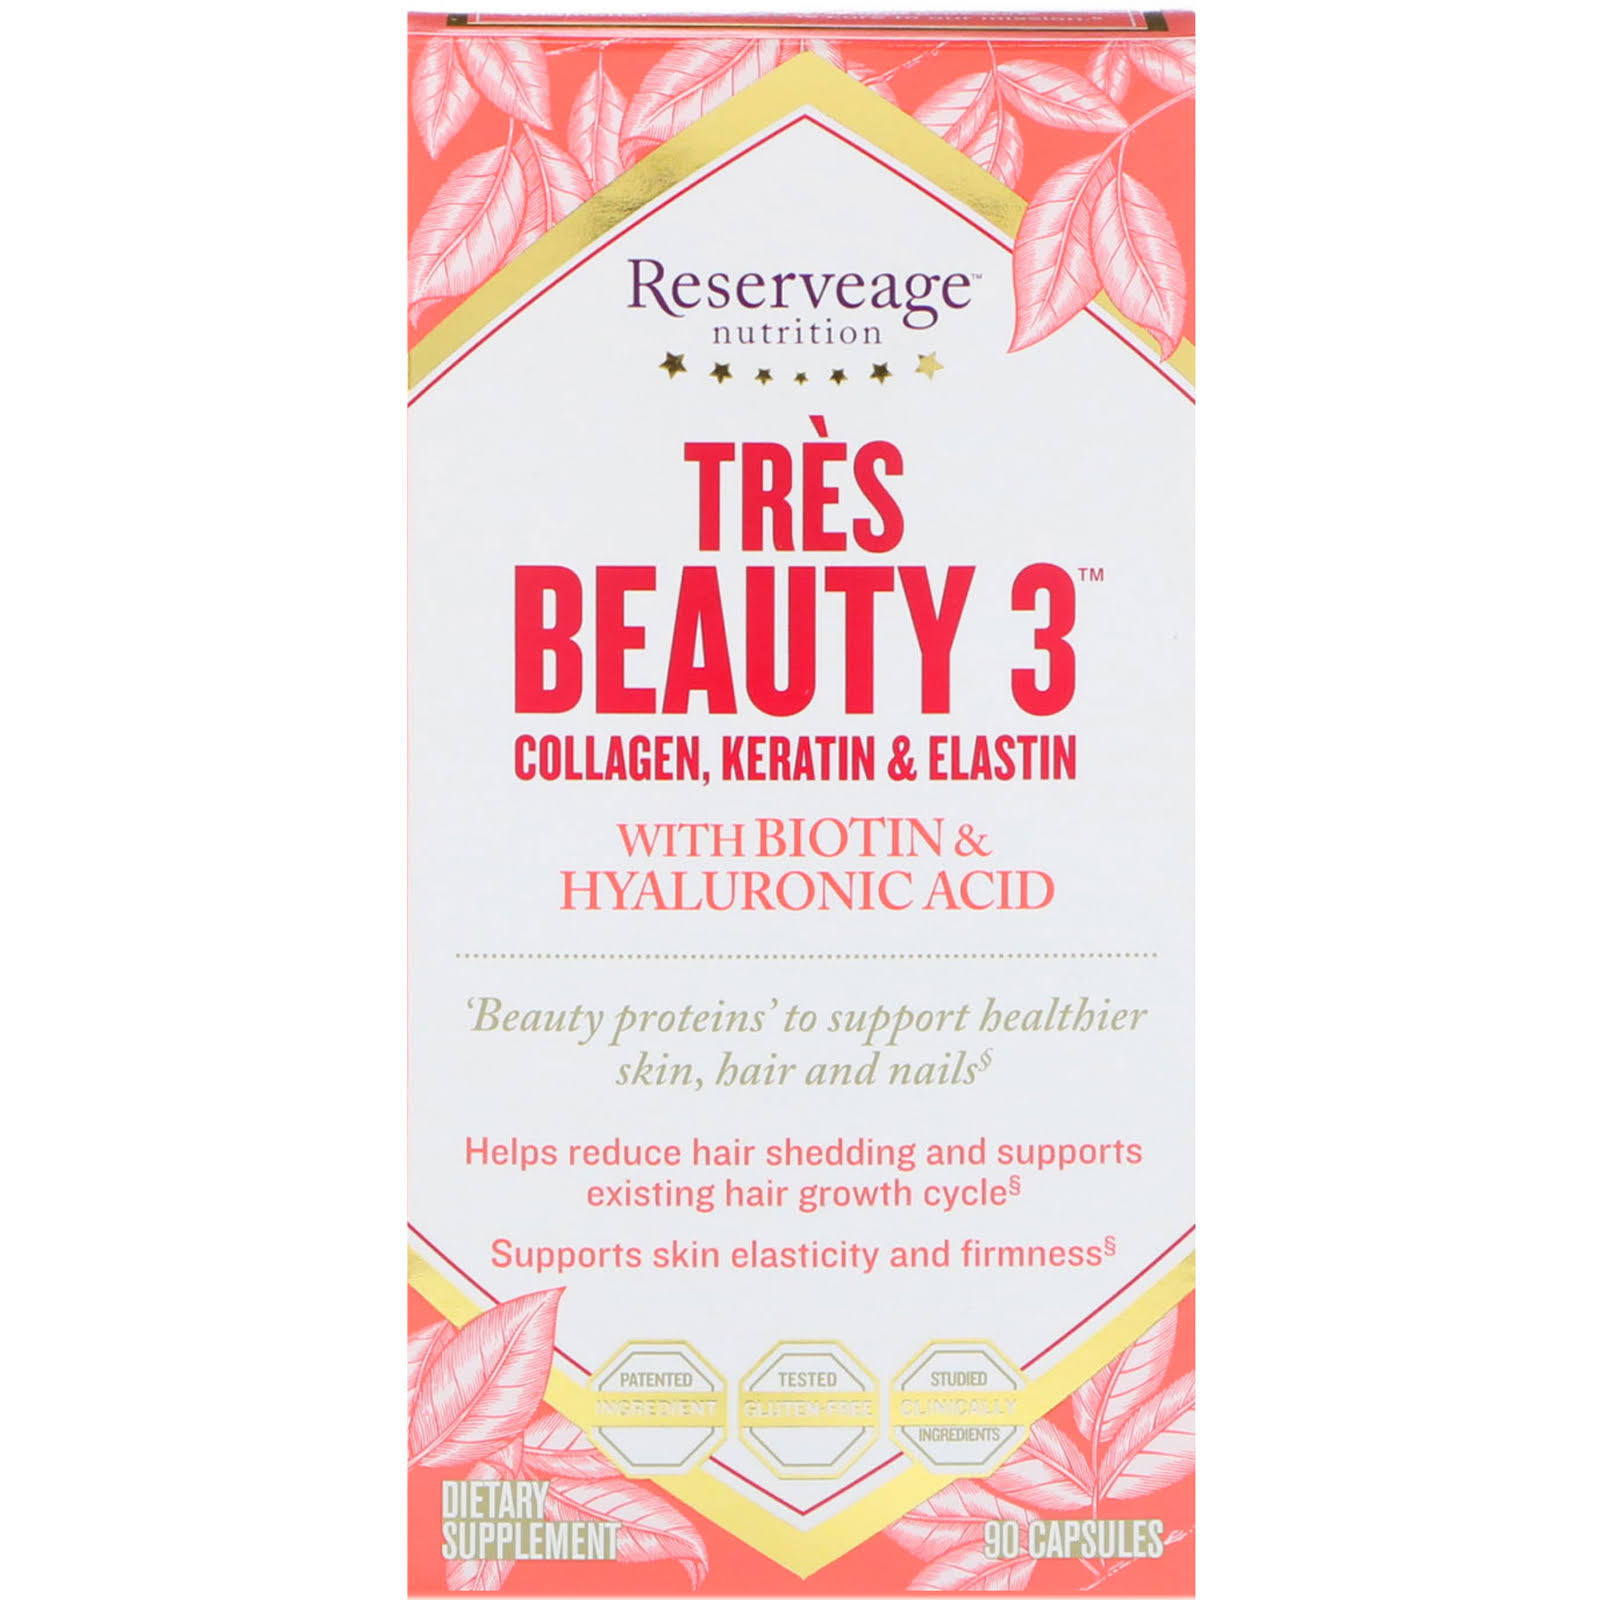 Reserveage Tres Beauty 3 with Biotin and Hyaluronic Acid - Supplement, 90 Capsules